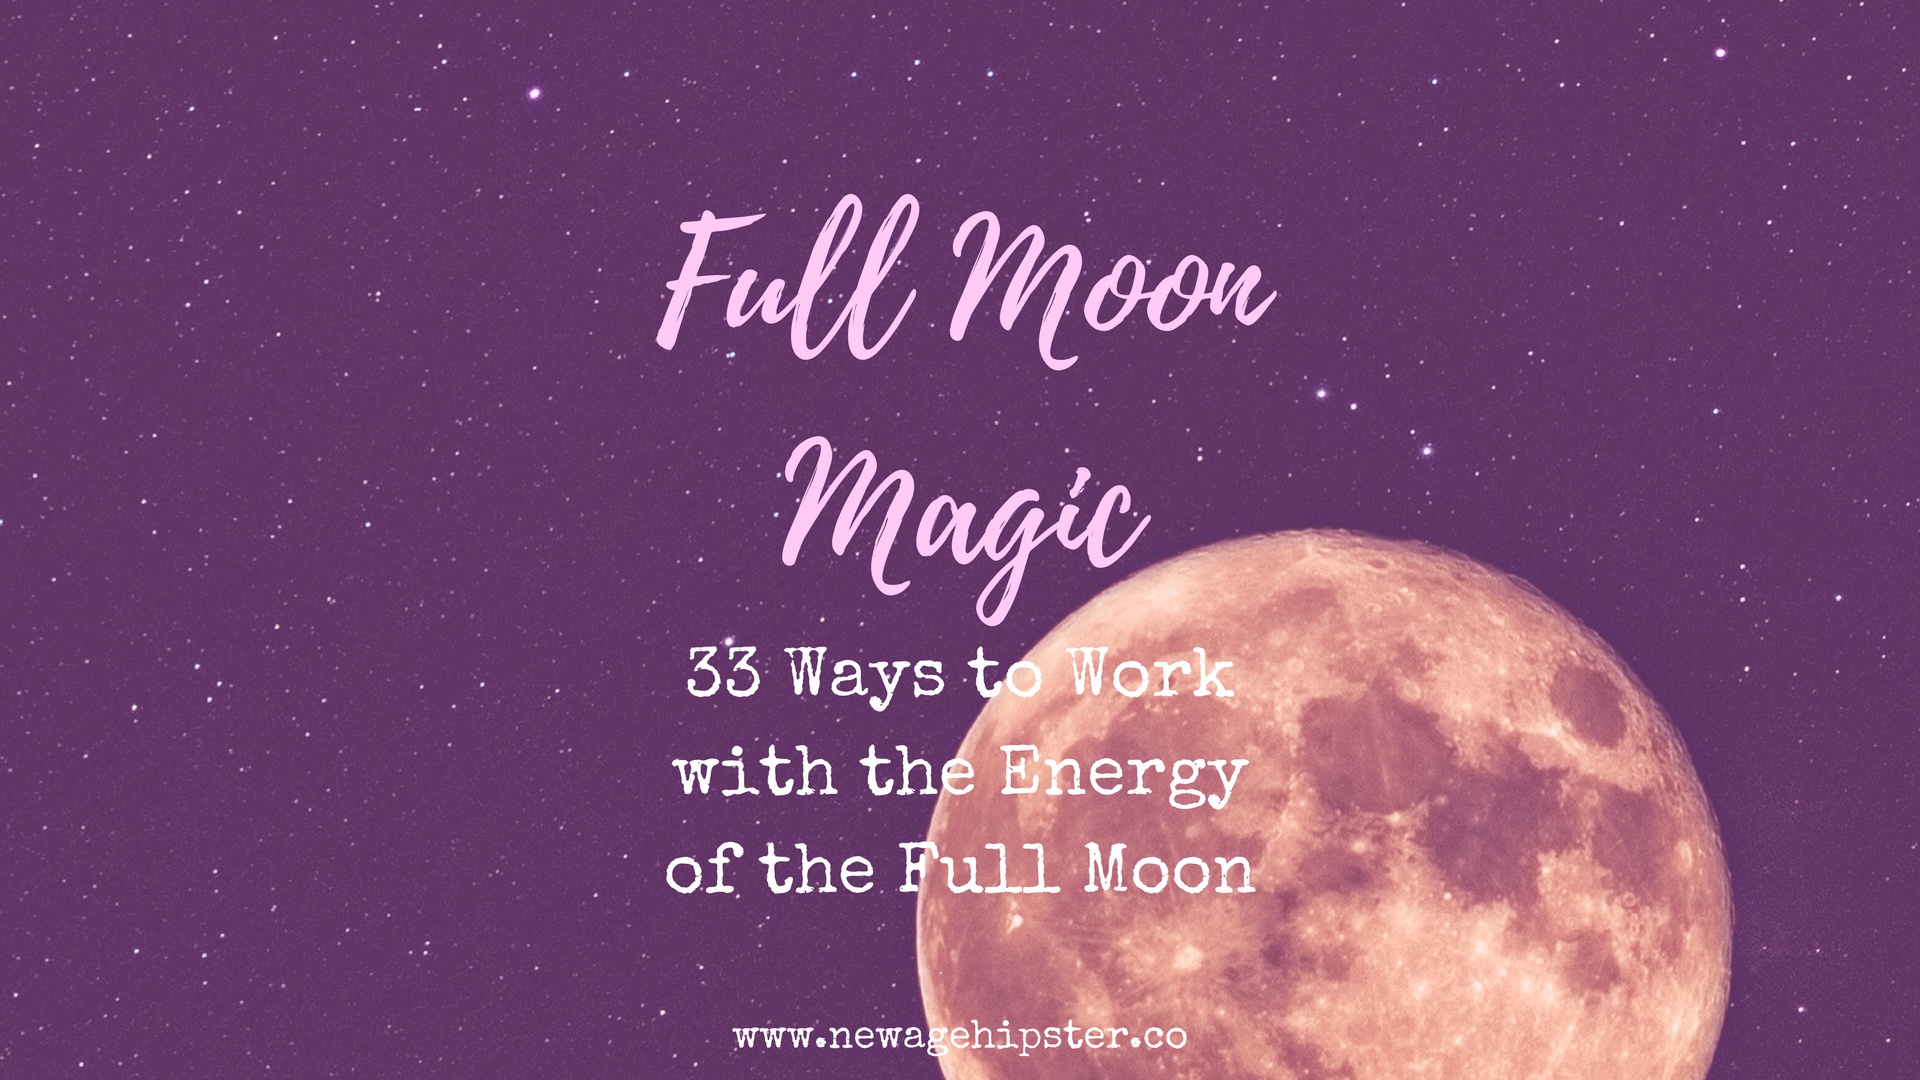 Full Moon Magic - 33 Ways to Work with the Energy of the